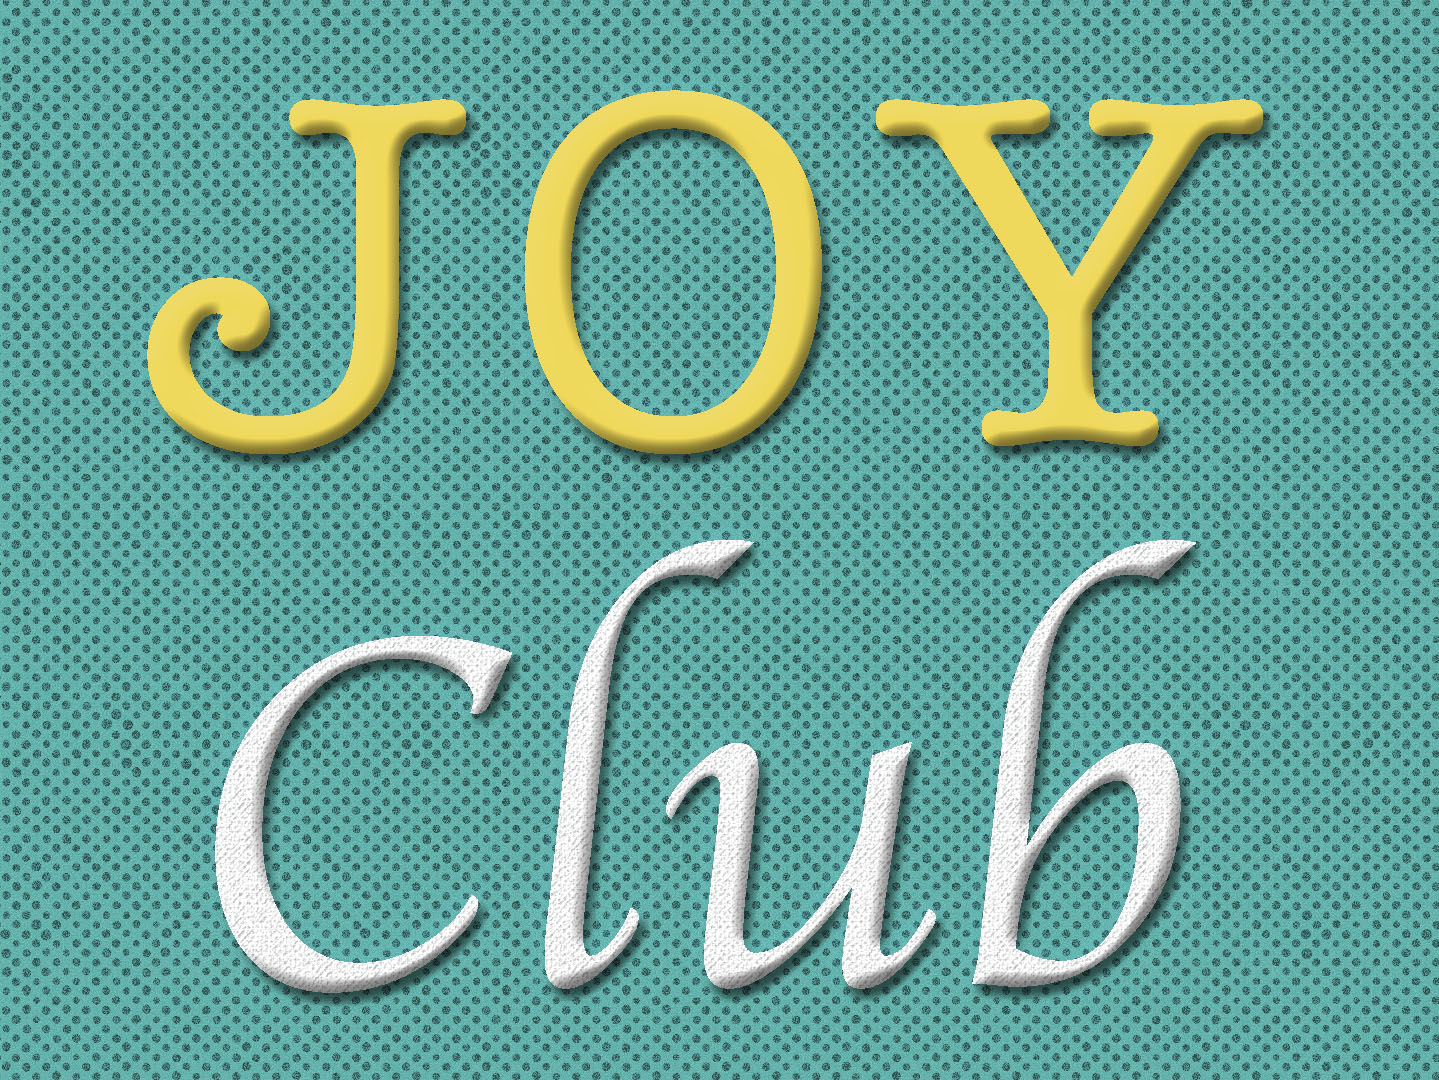 JOY club image